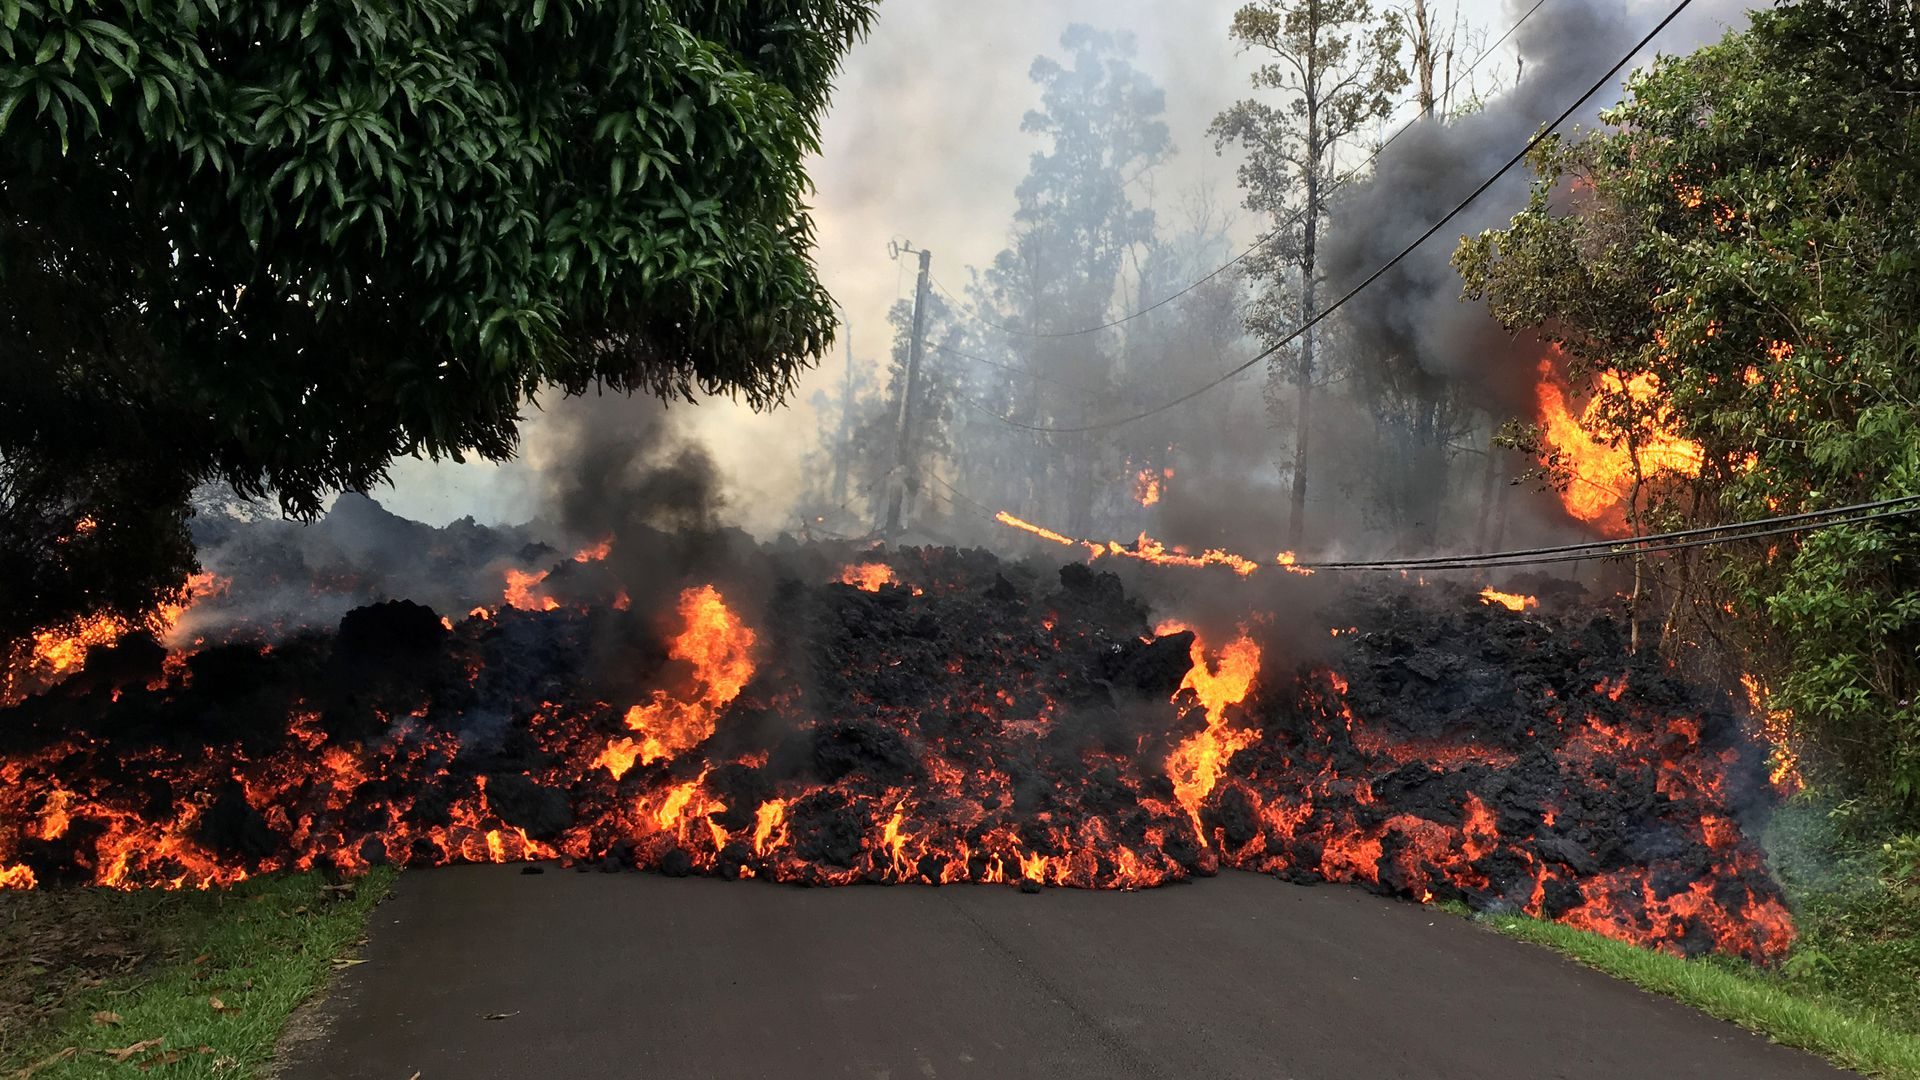 Lava on the street